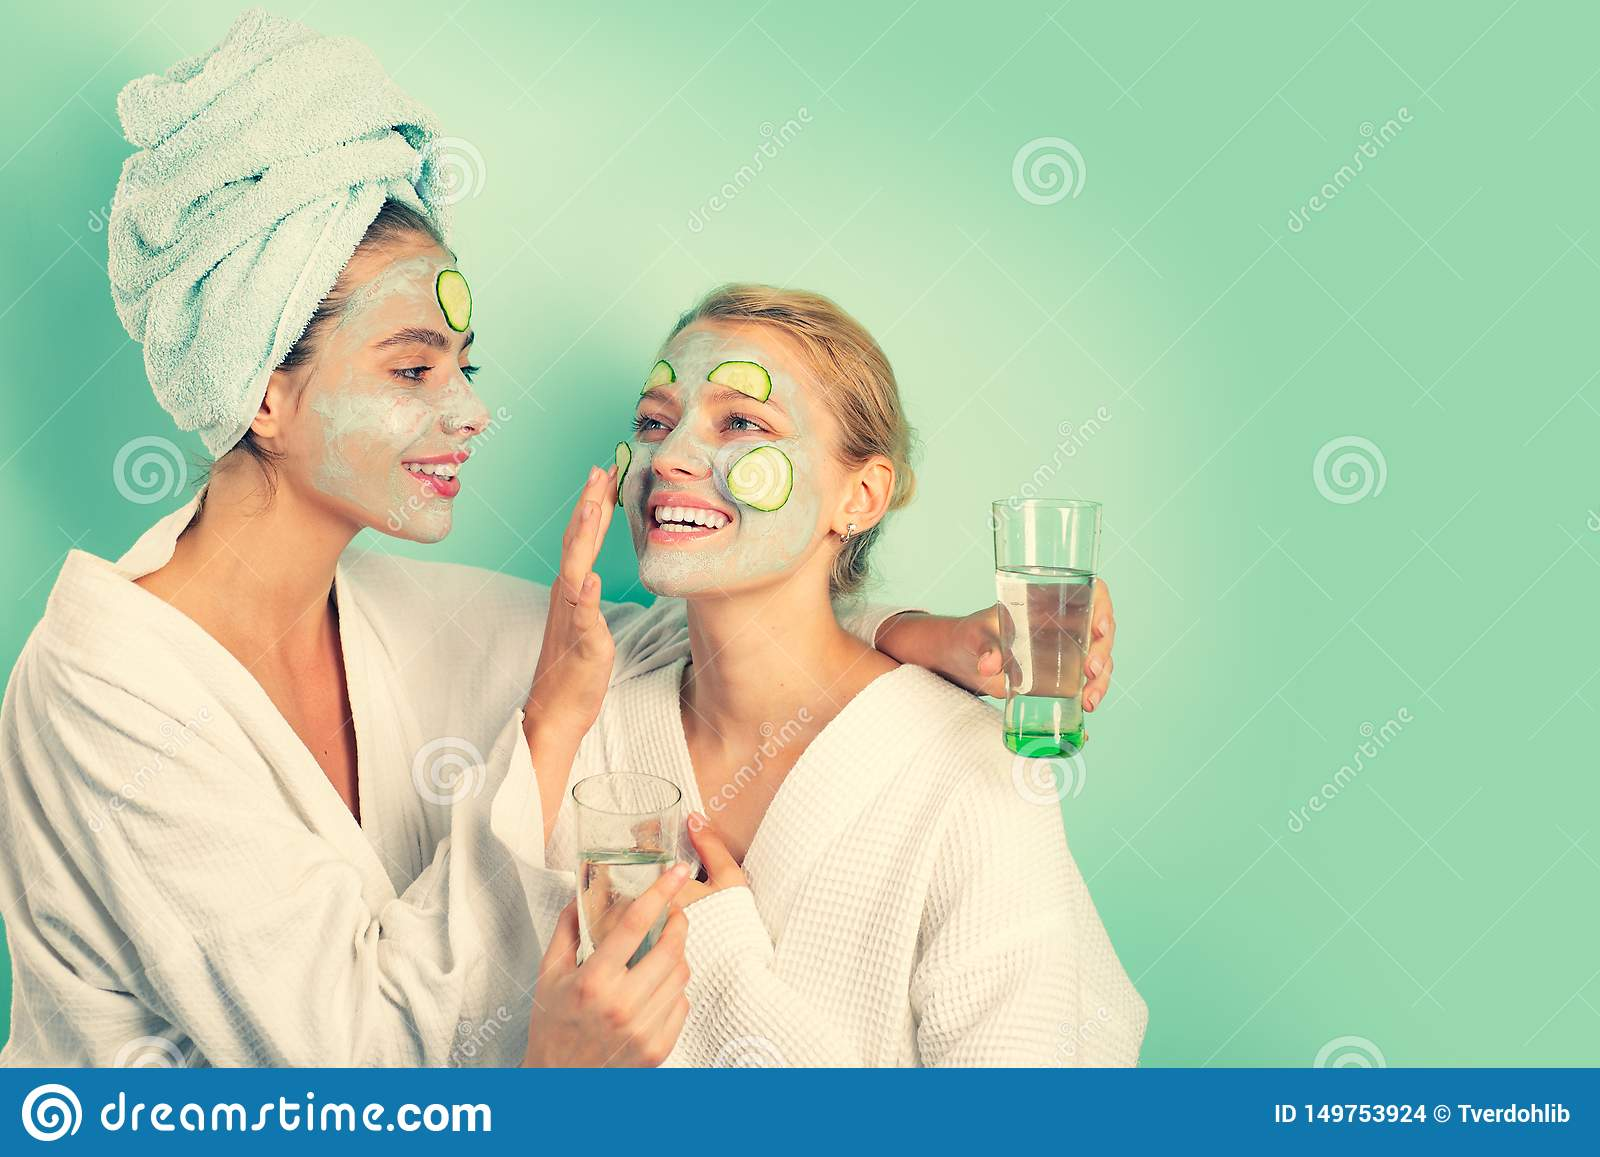 Anti age mask. Stay beautiful. Skin care for all ages. Women having fun cucumber skin mask. Relax concept. Beauty begins